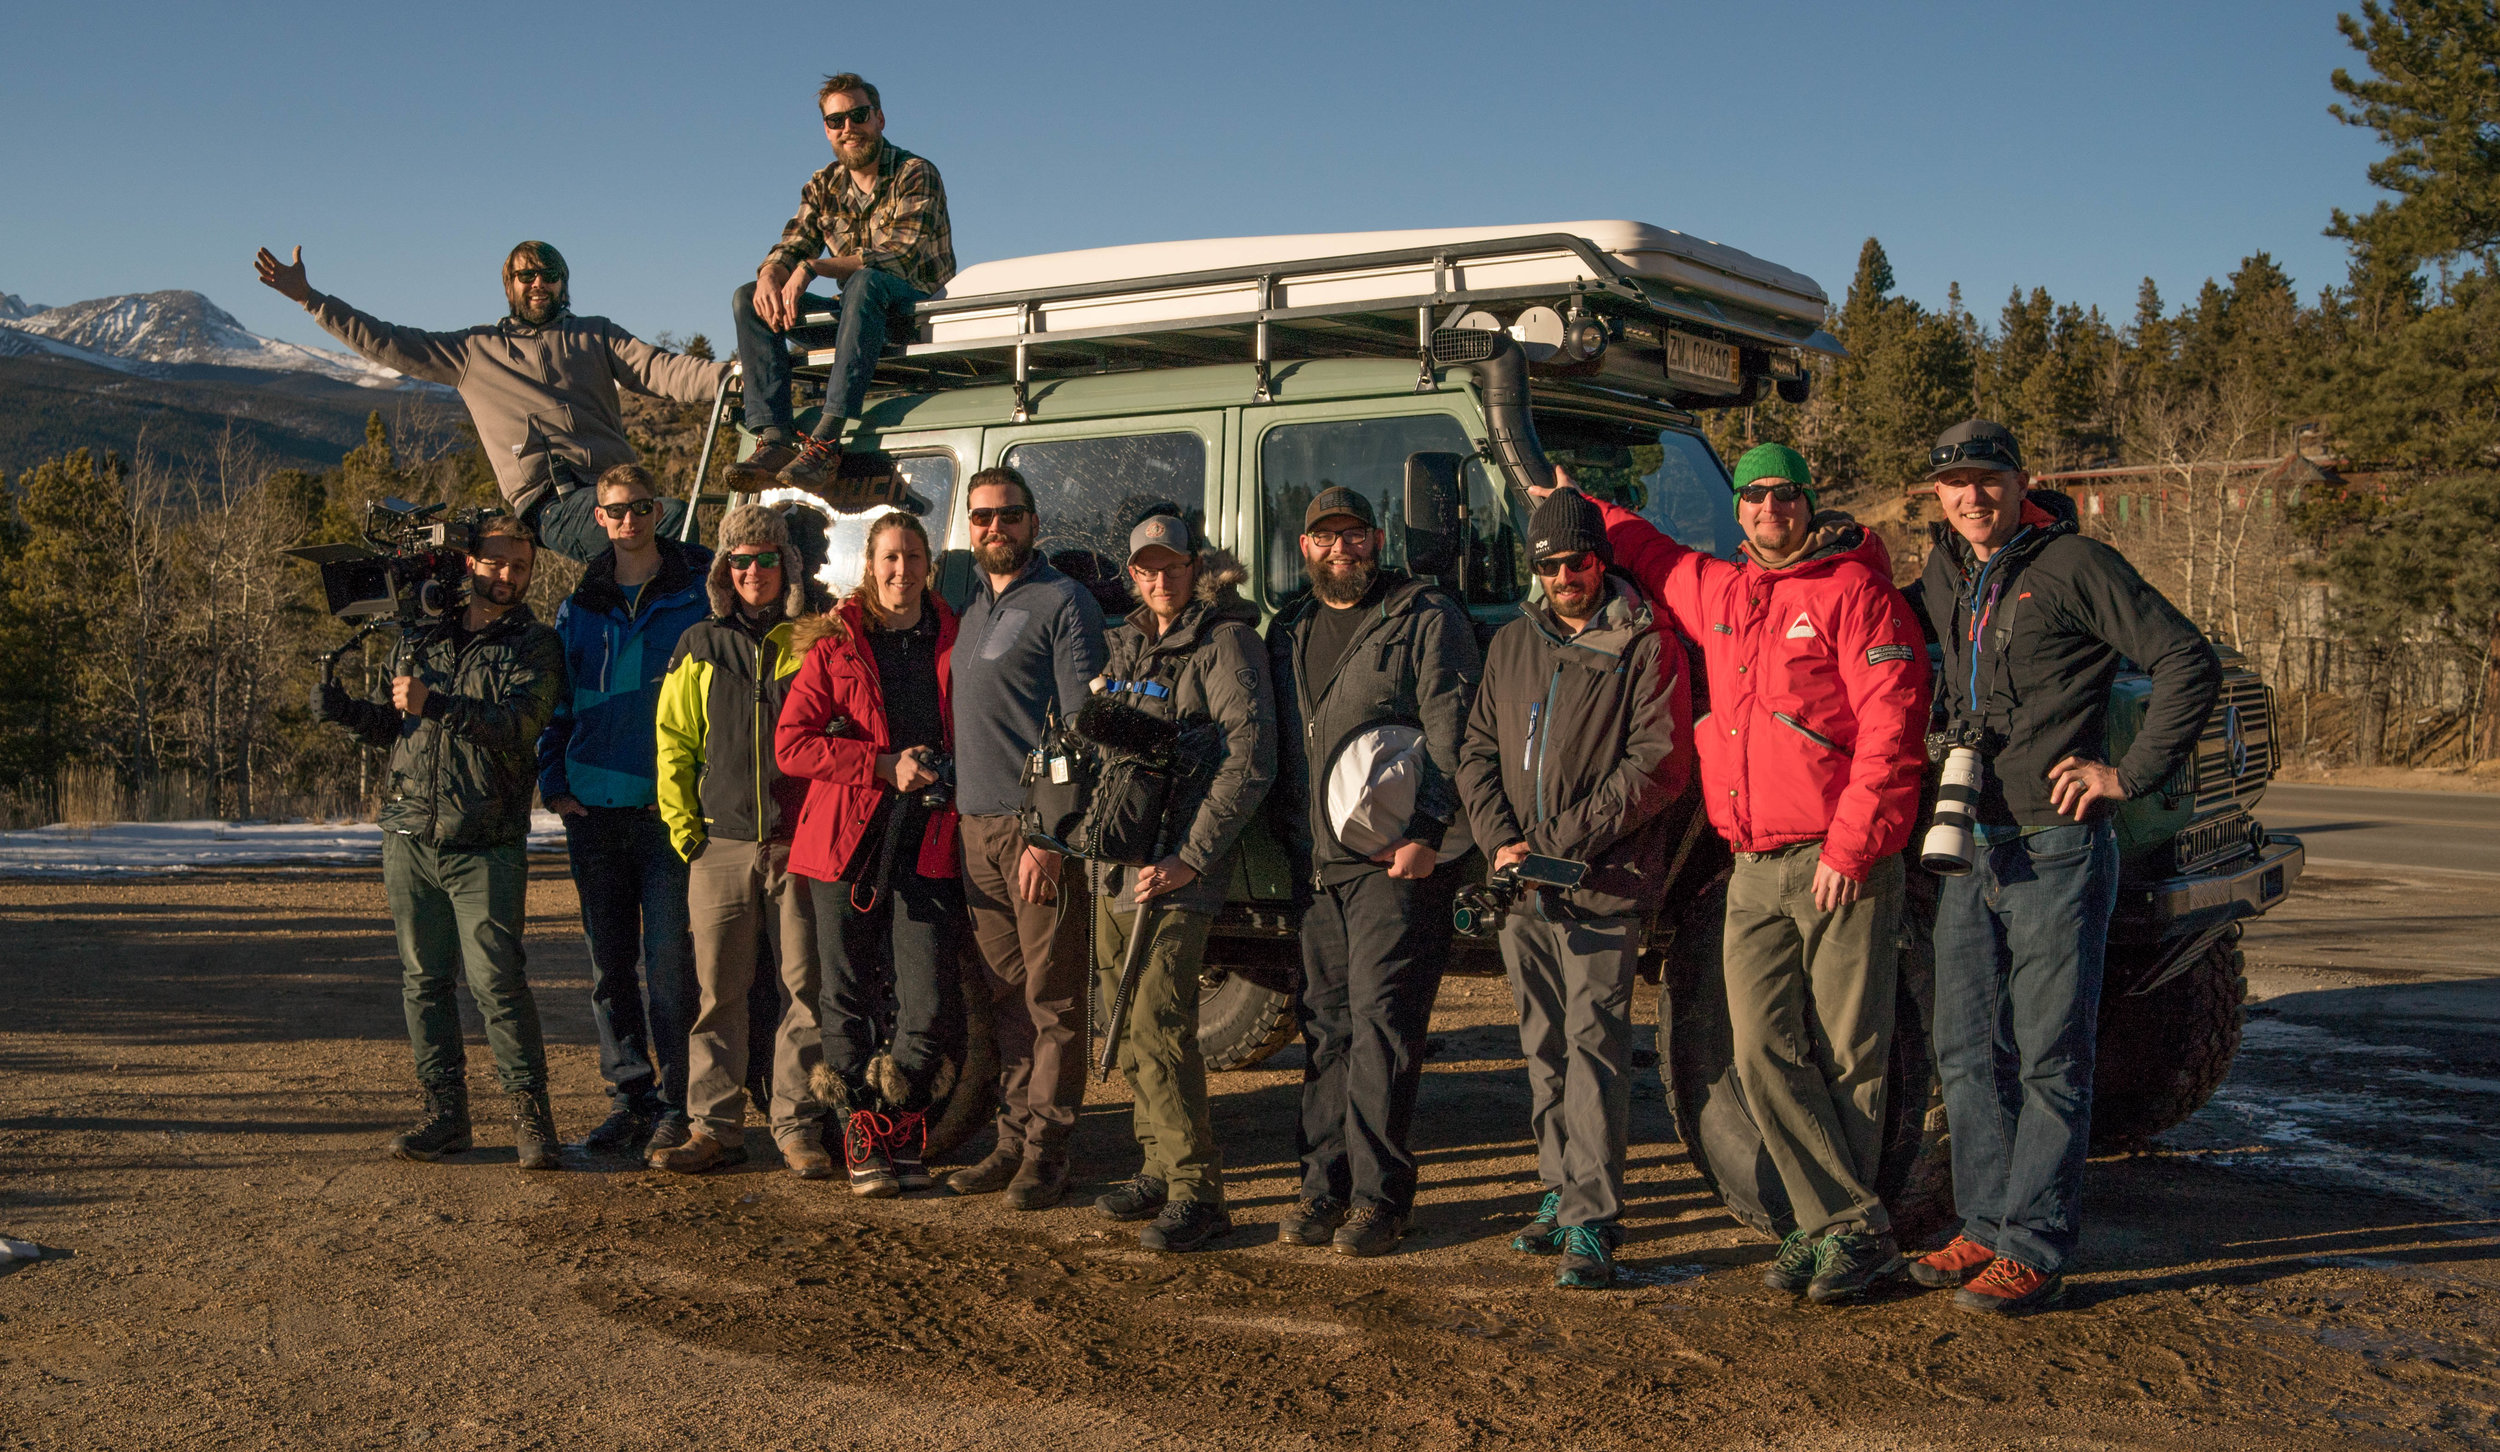 This crew came together from LA to New York, Michigan to South Carolina to gather in the mountains of Colorado.